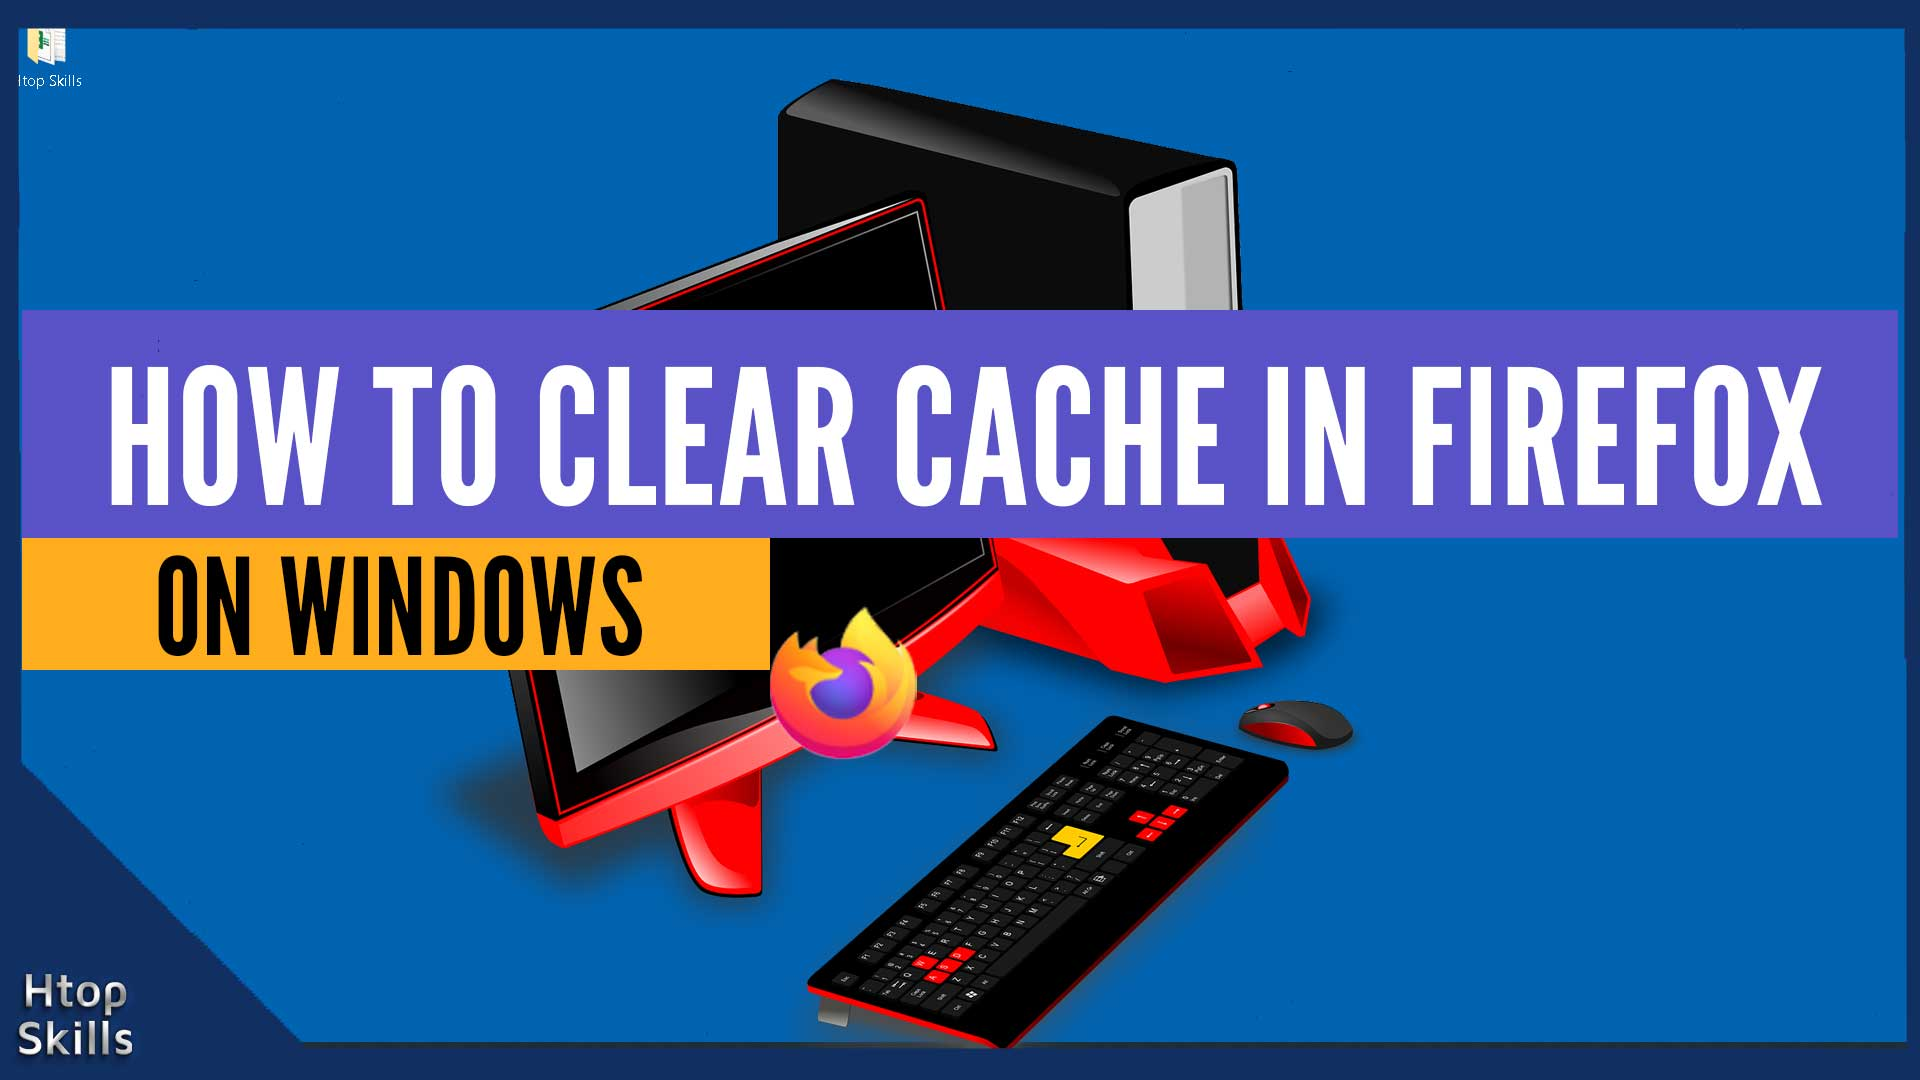 How To Clear Cache On Firefox